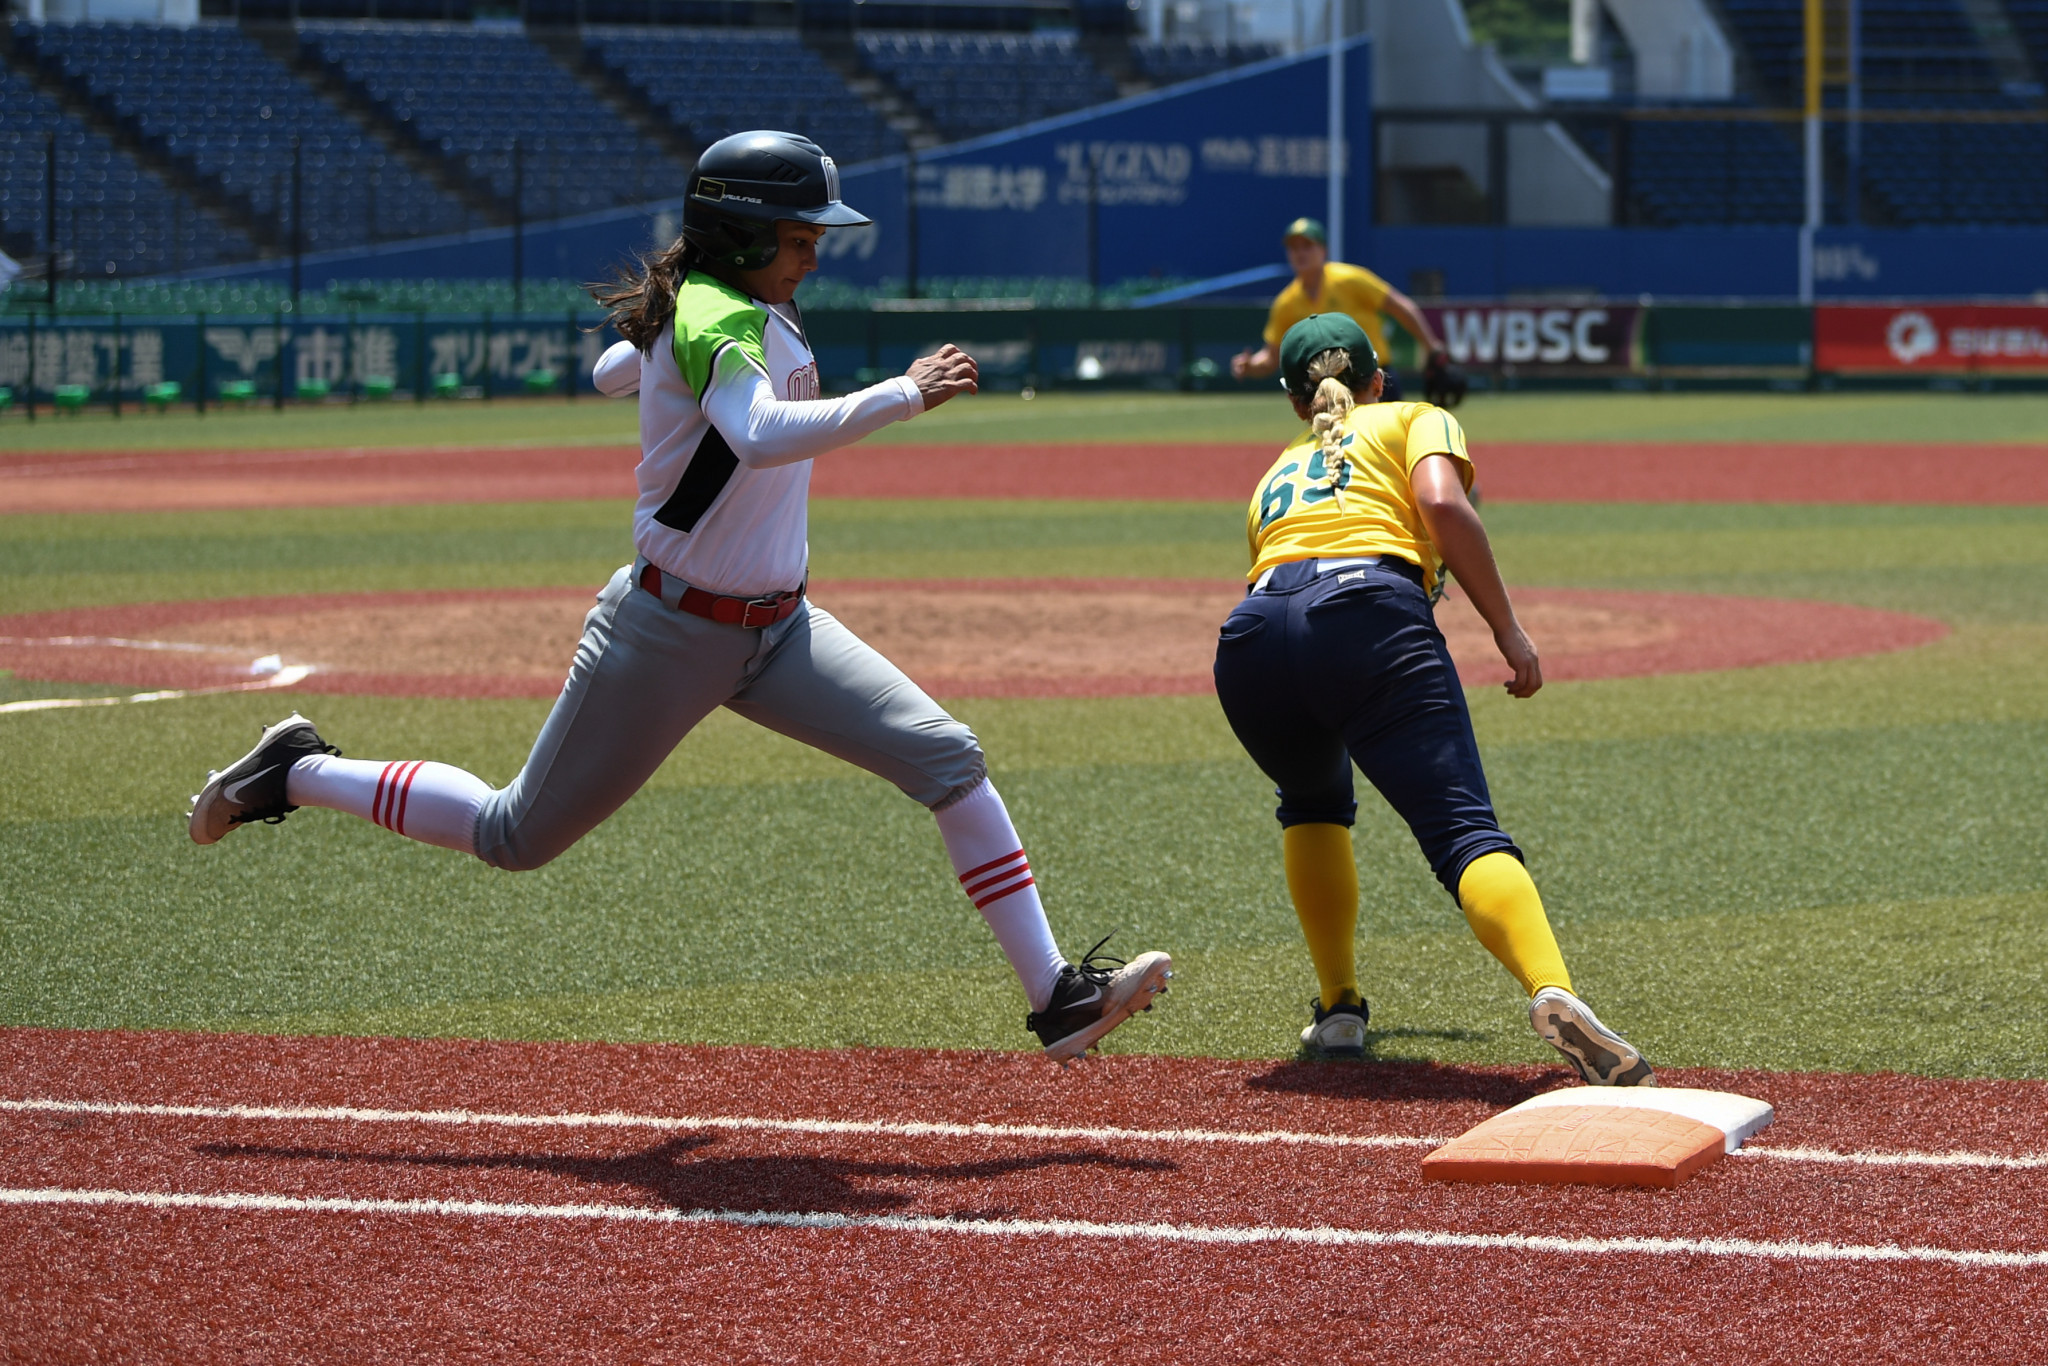 Two first-base bags will be used in softball to avoid collisions ©Getty Images